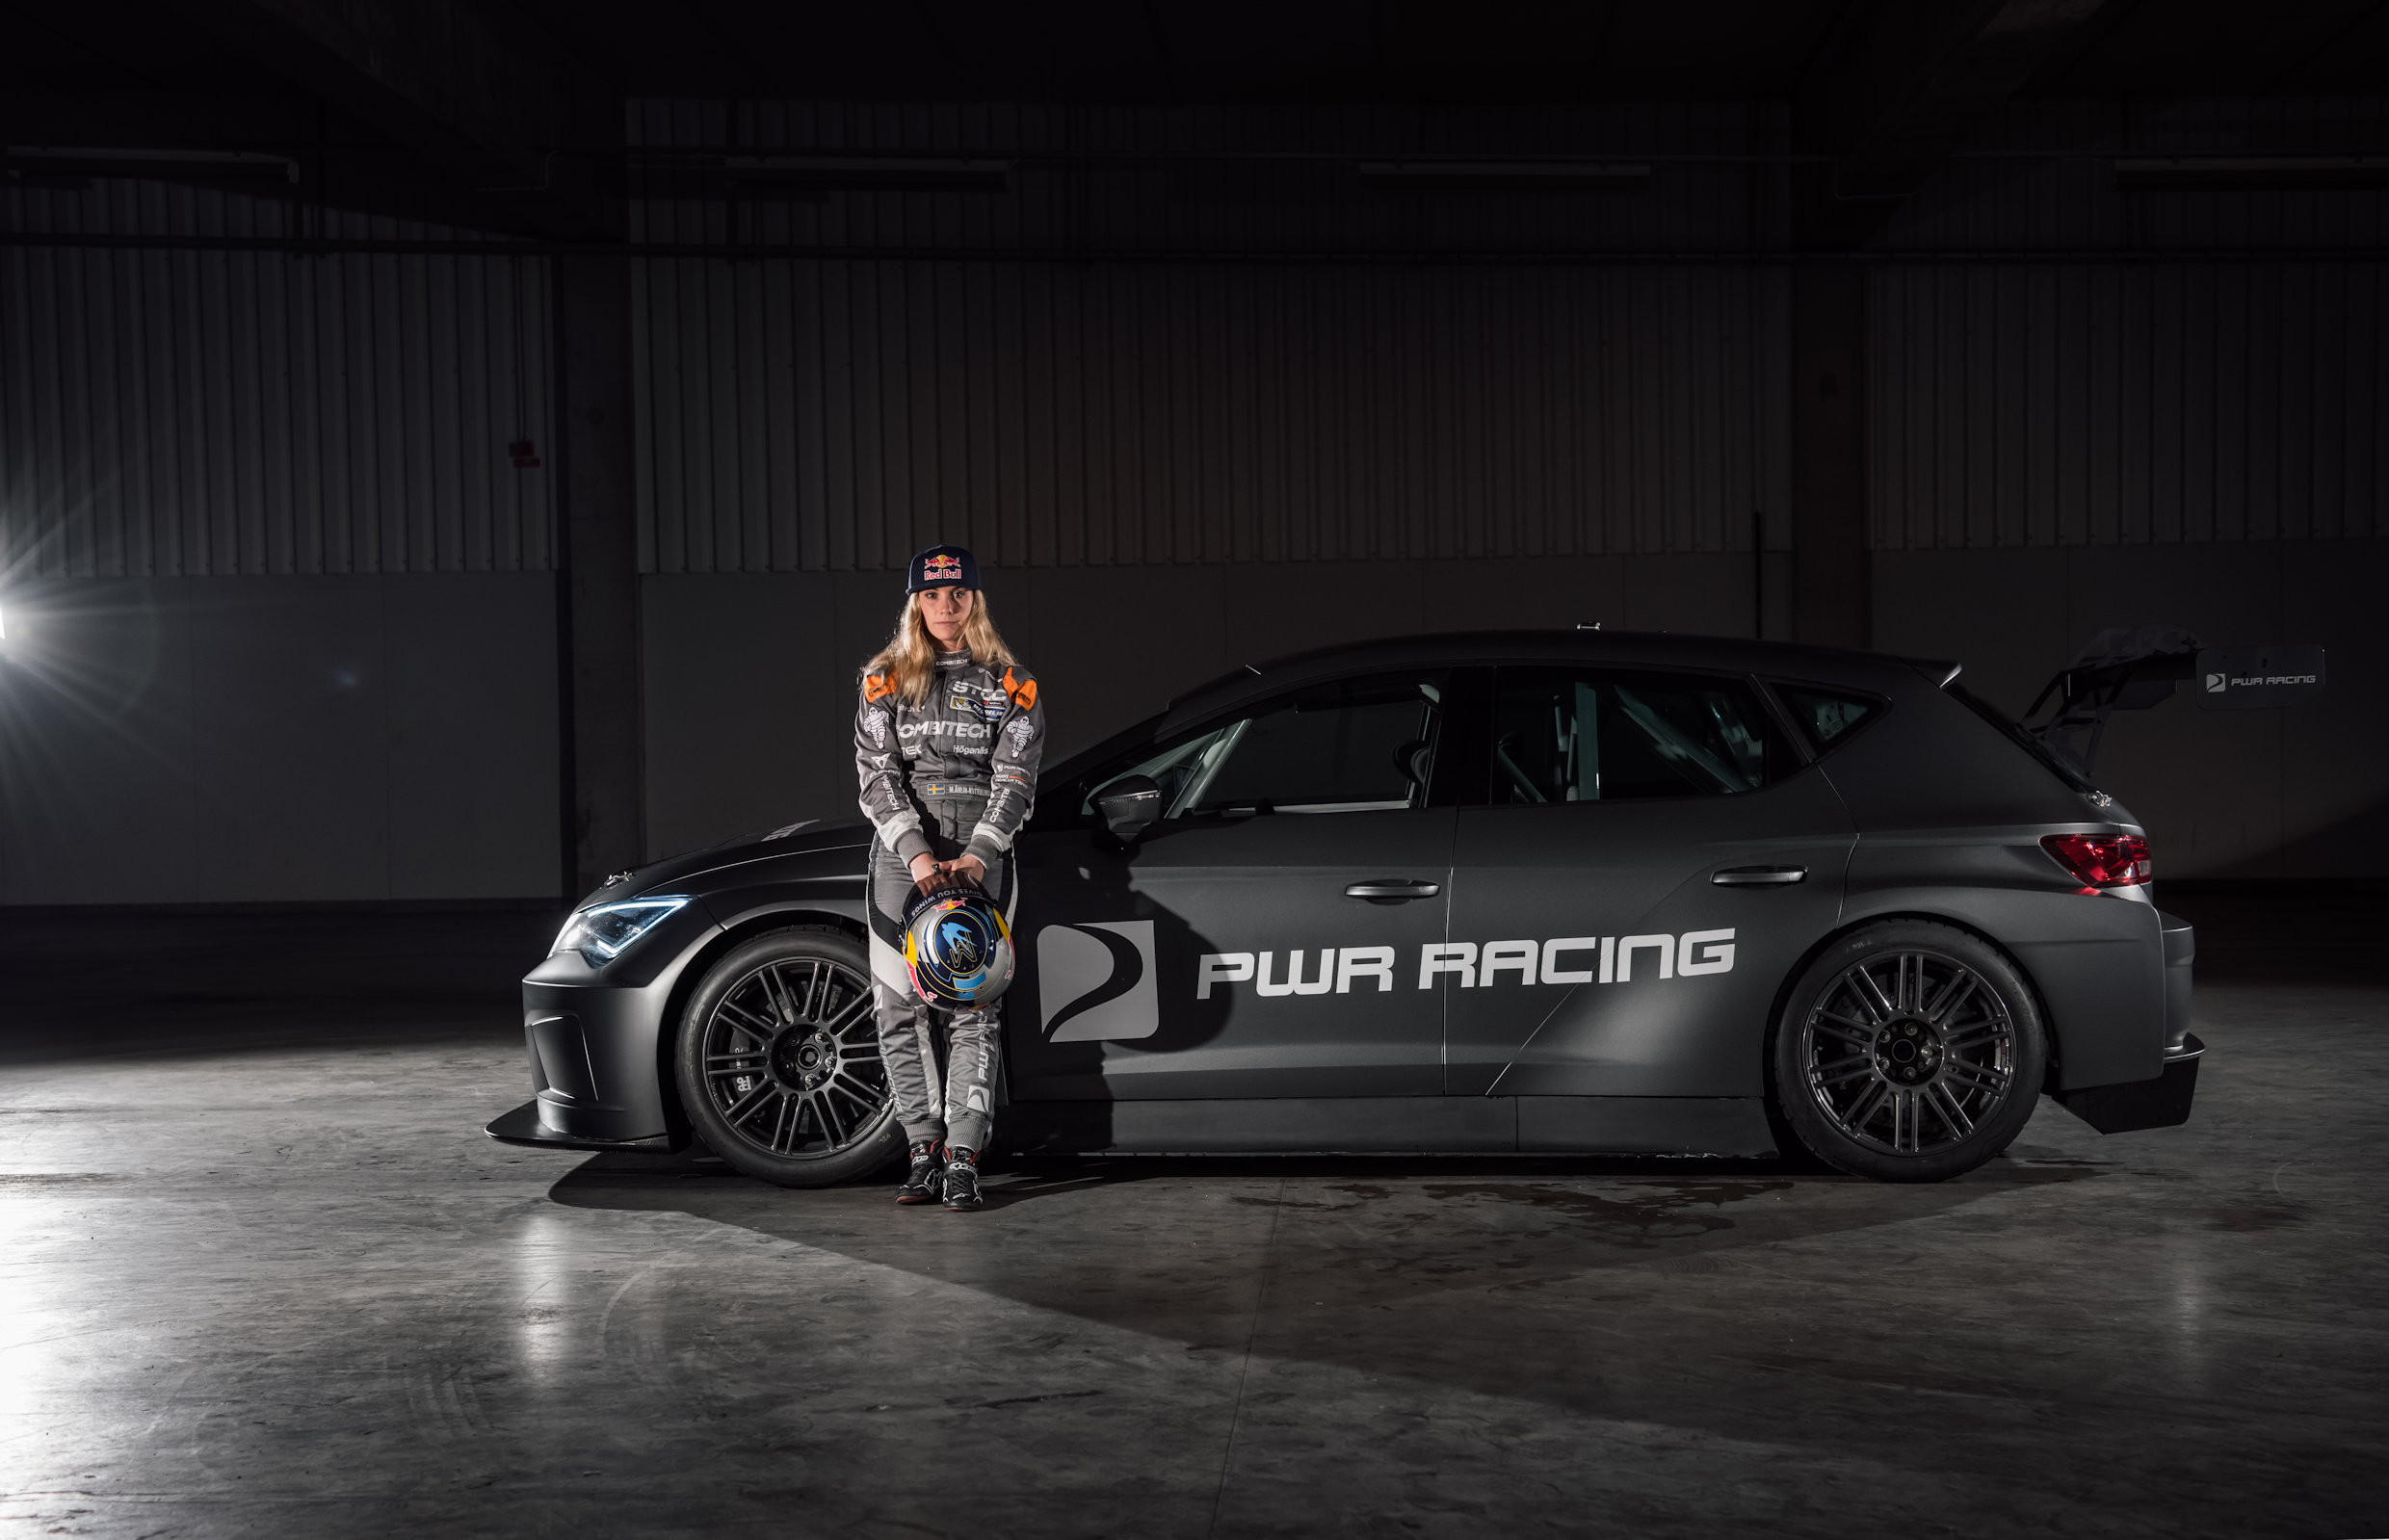 Pwr Racing Unveil Pwr 001 Electric Prototype At Mantorp Park